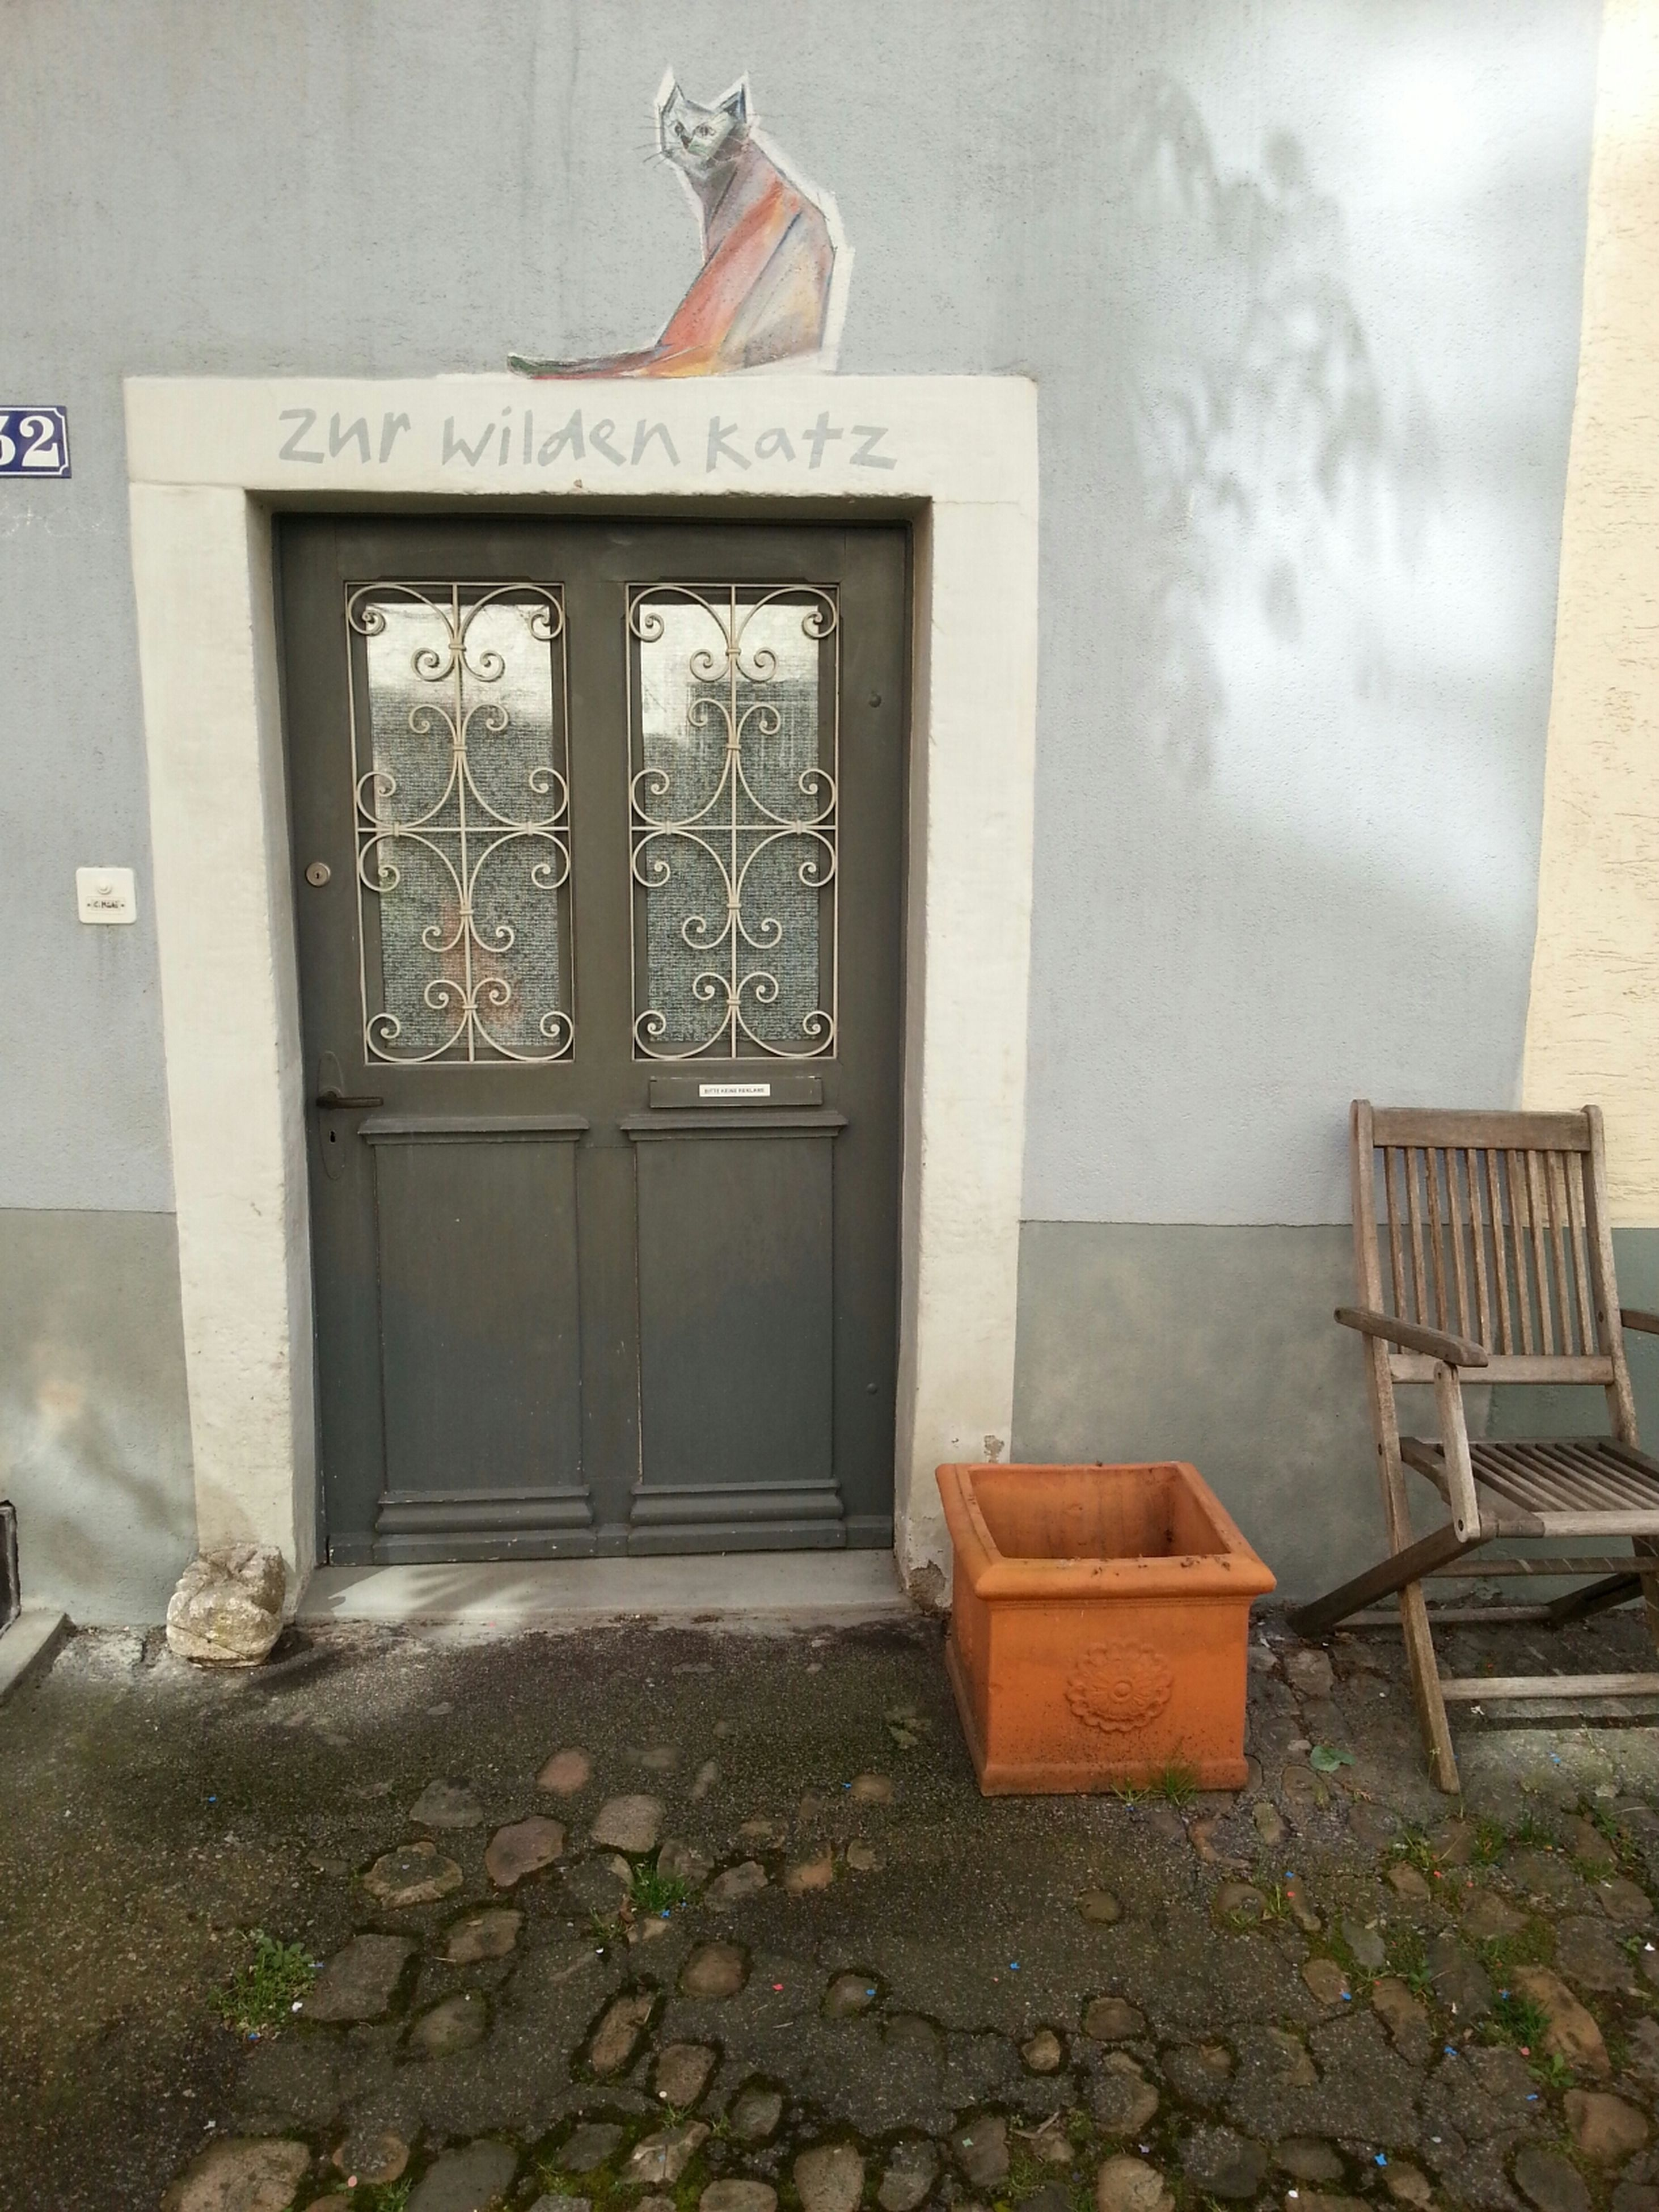 architecture, built structure, window, building exterior, door, house, closed, abandoned, wall - building feature, entrance, day, empty, old, glass - material, no people, cobblestone, text, obsolete, chair, absence